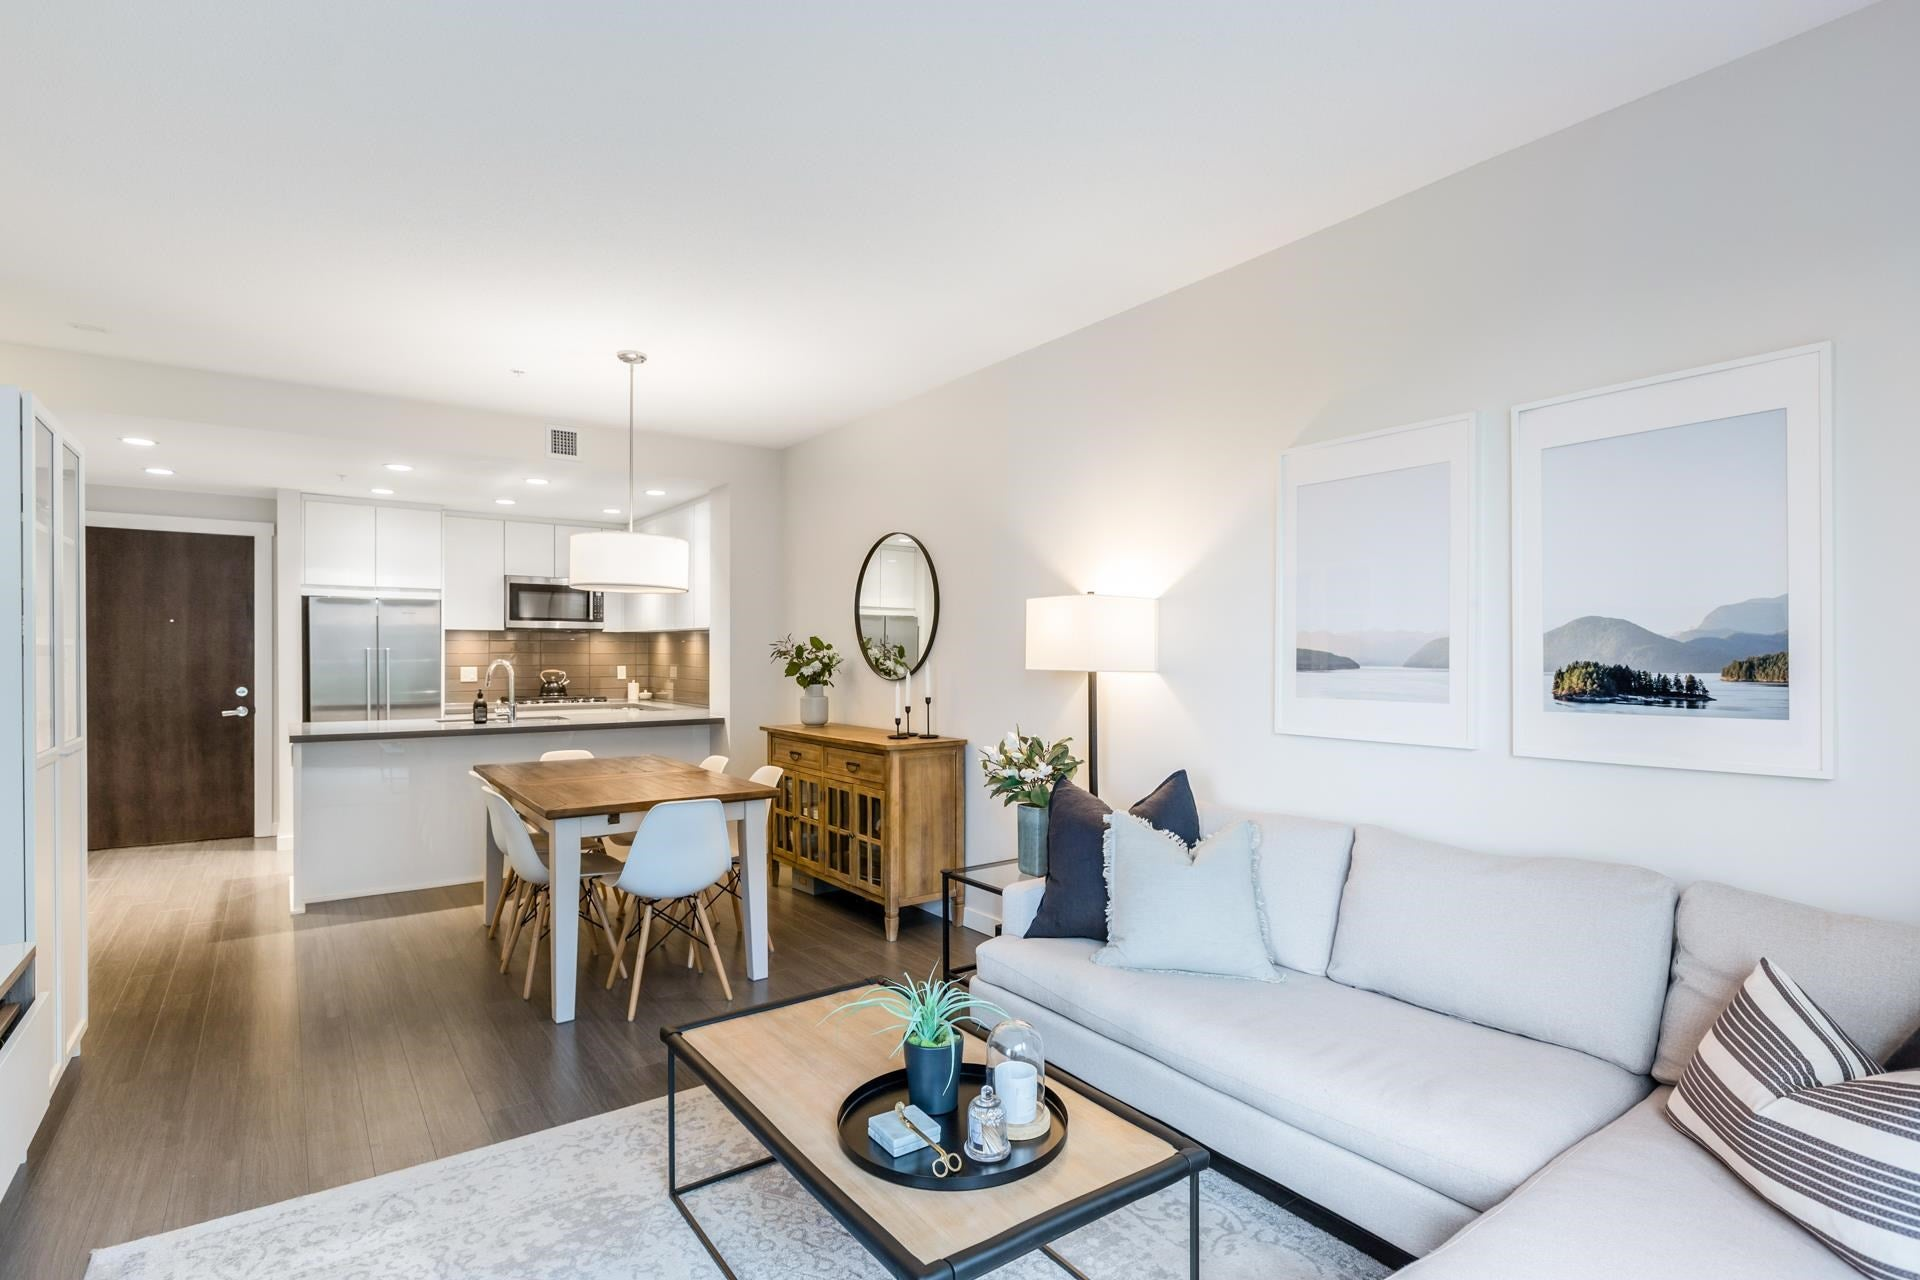 207 255 W 1ST STREET - Lower Lonsdale Apartment/Condo for sale, 2 Bedrooms (R2603882) - #1